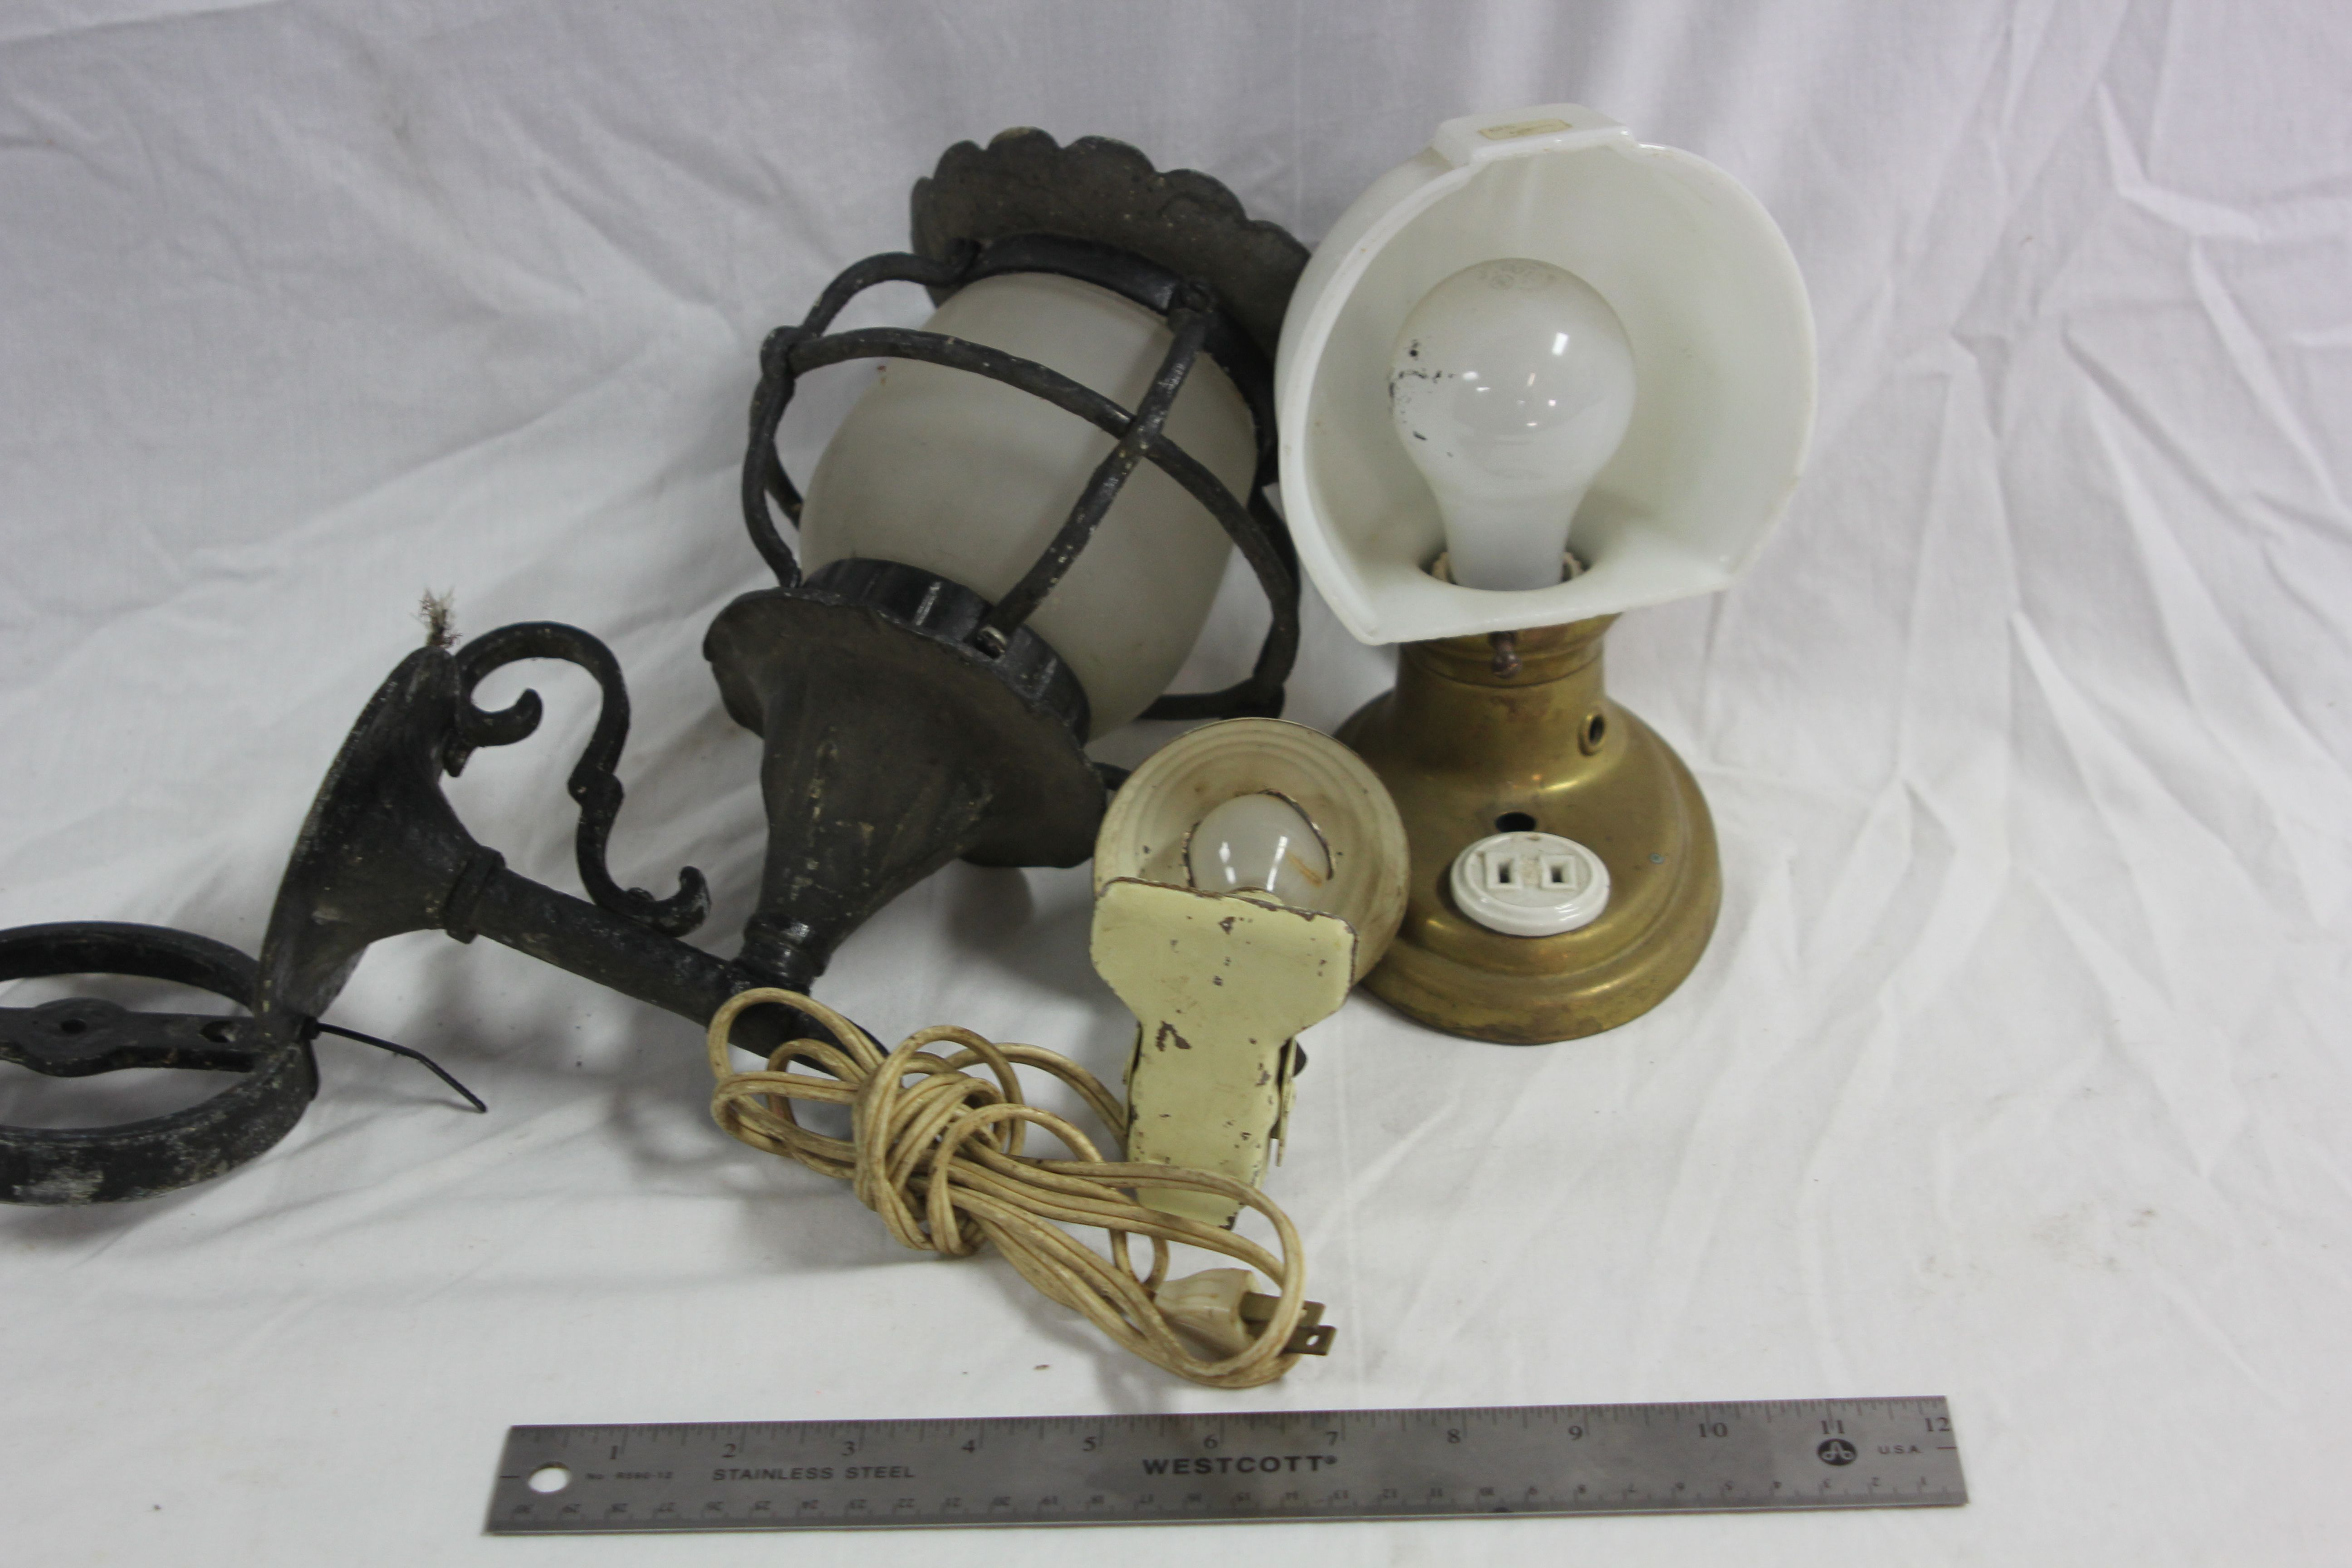 Period Lamps